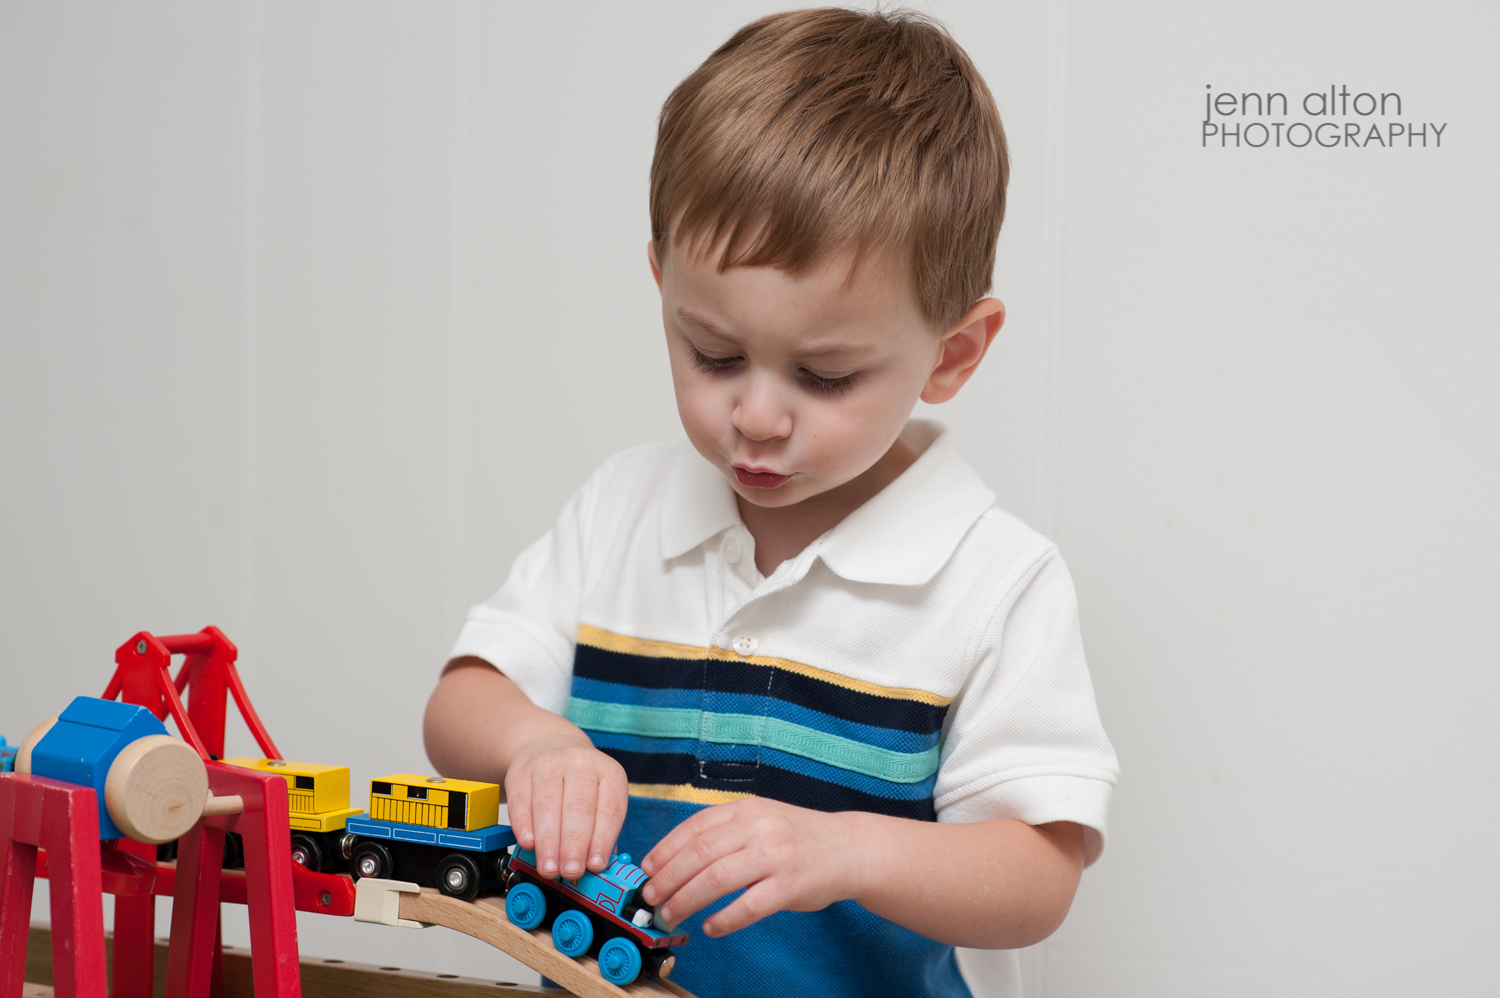 Toddler with train set